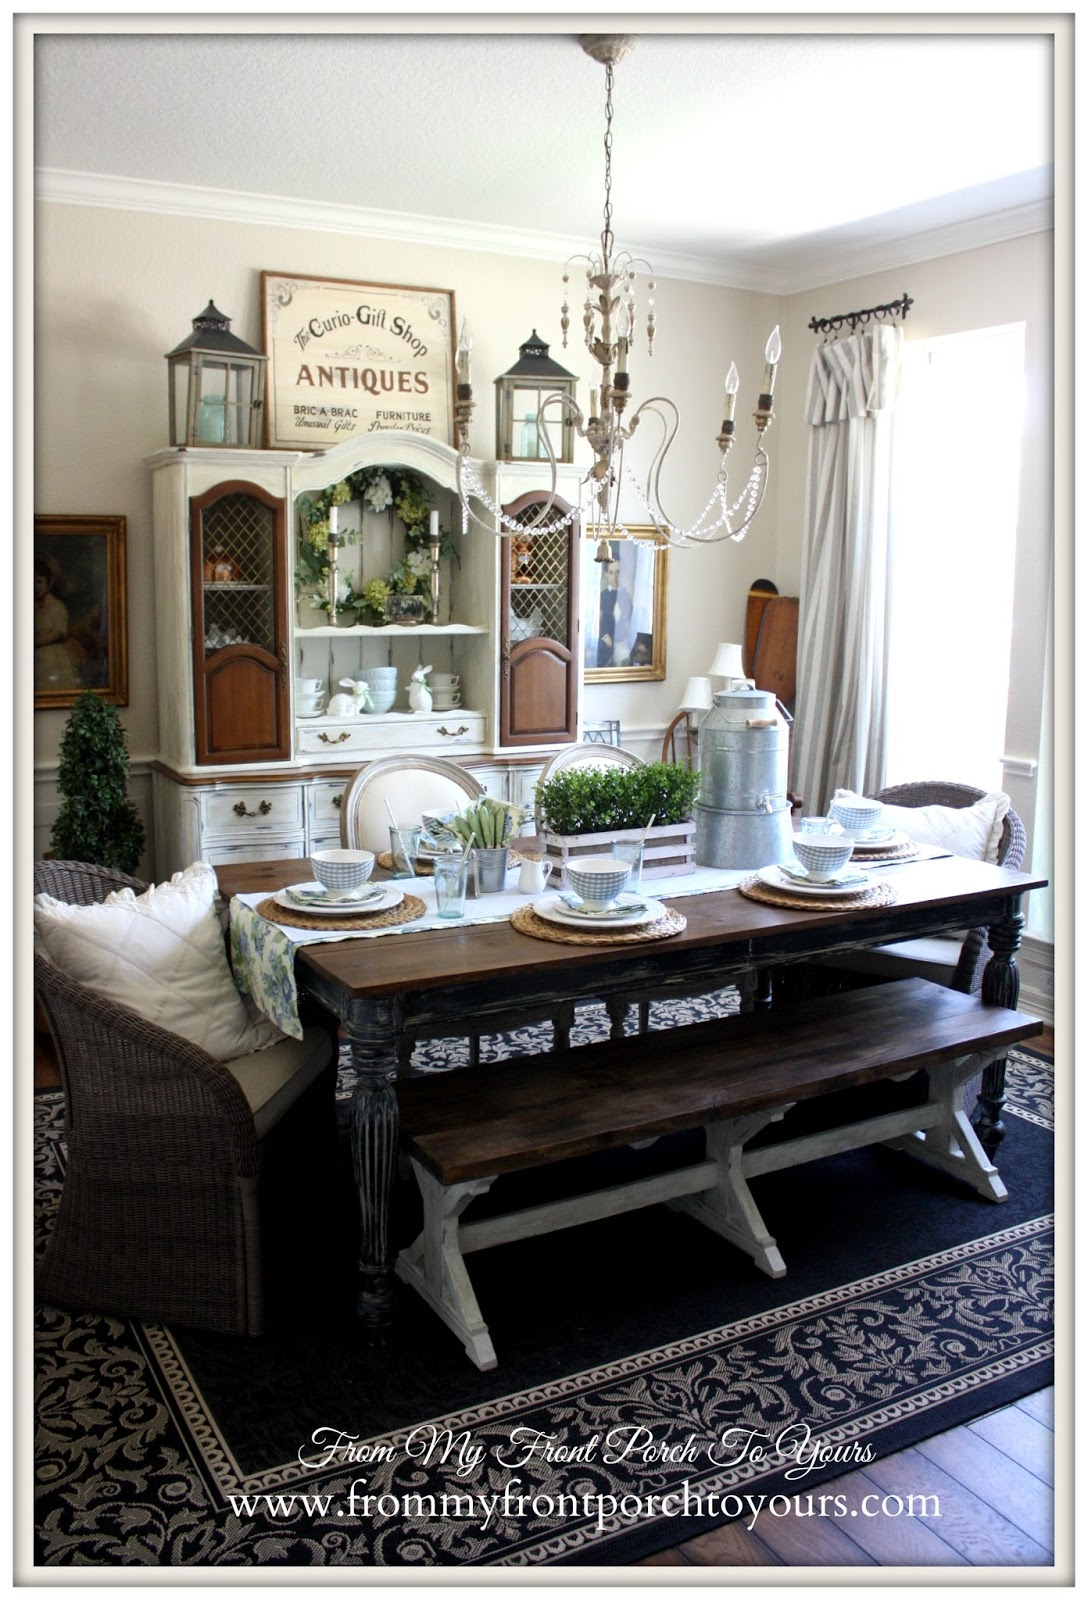 French Farmhouse Dining Room set for Spring Brunch